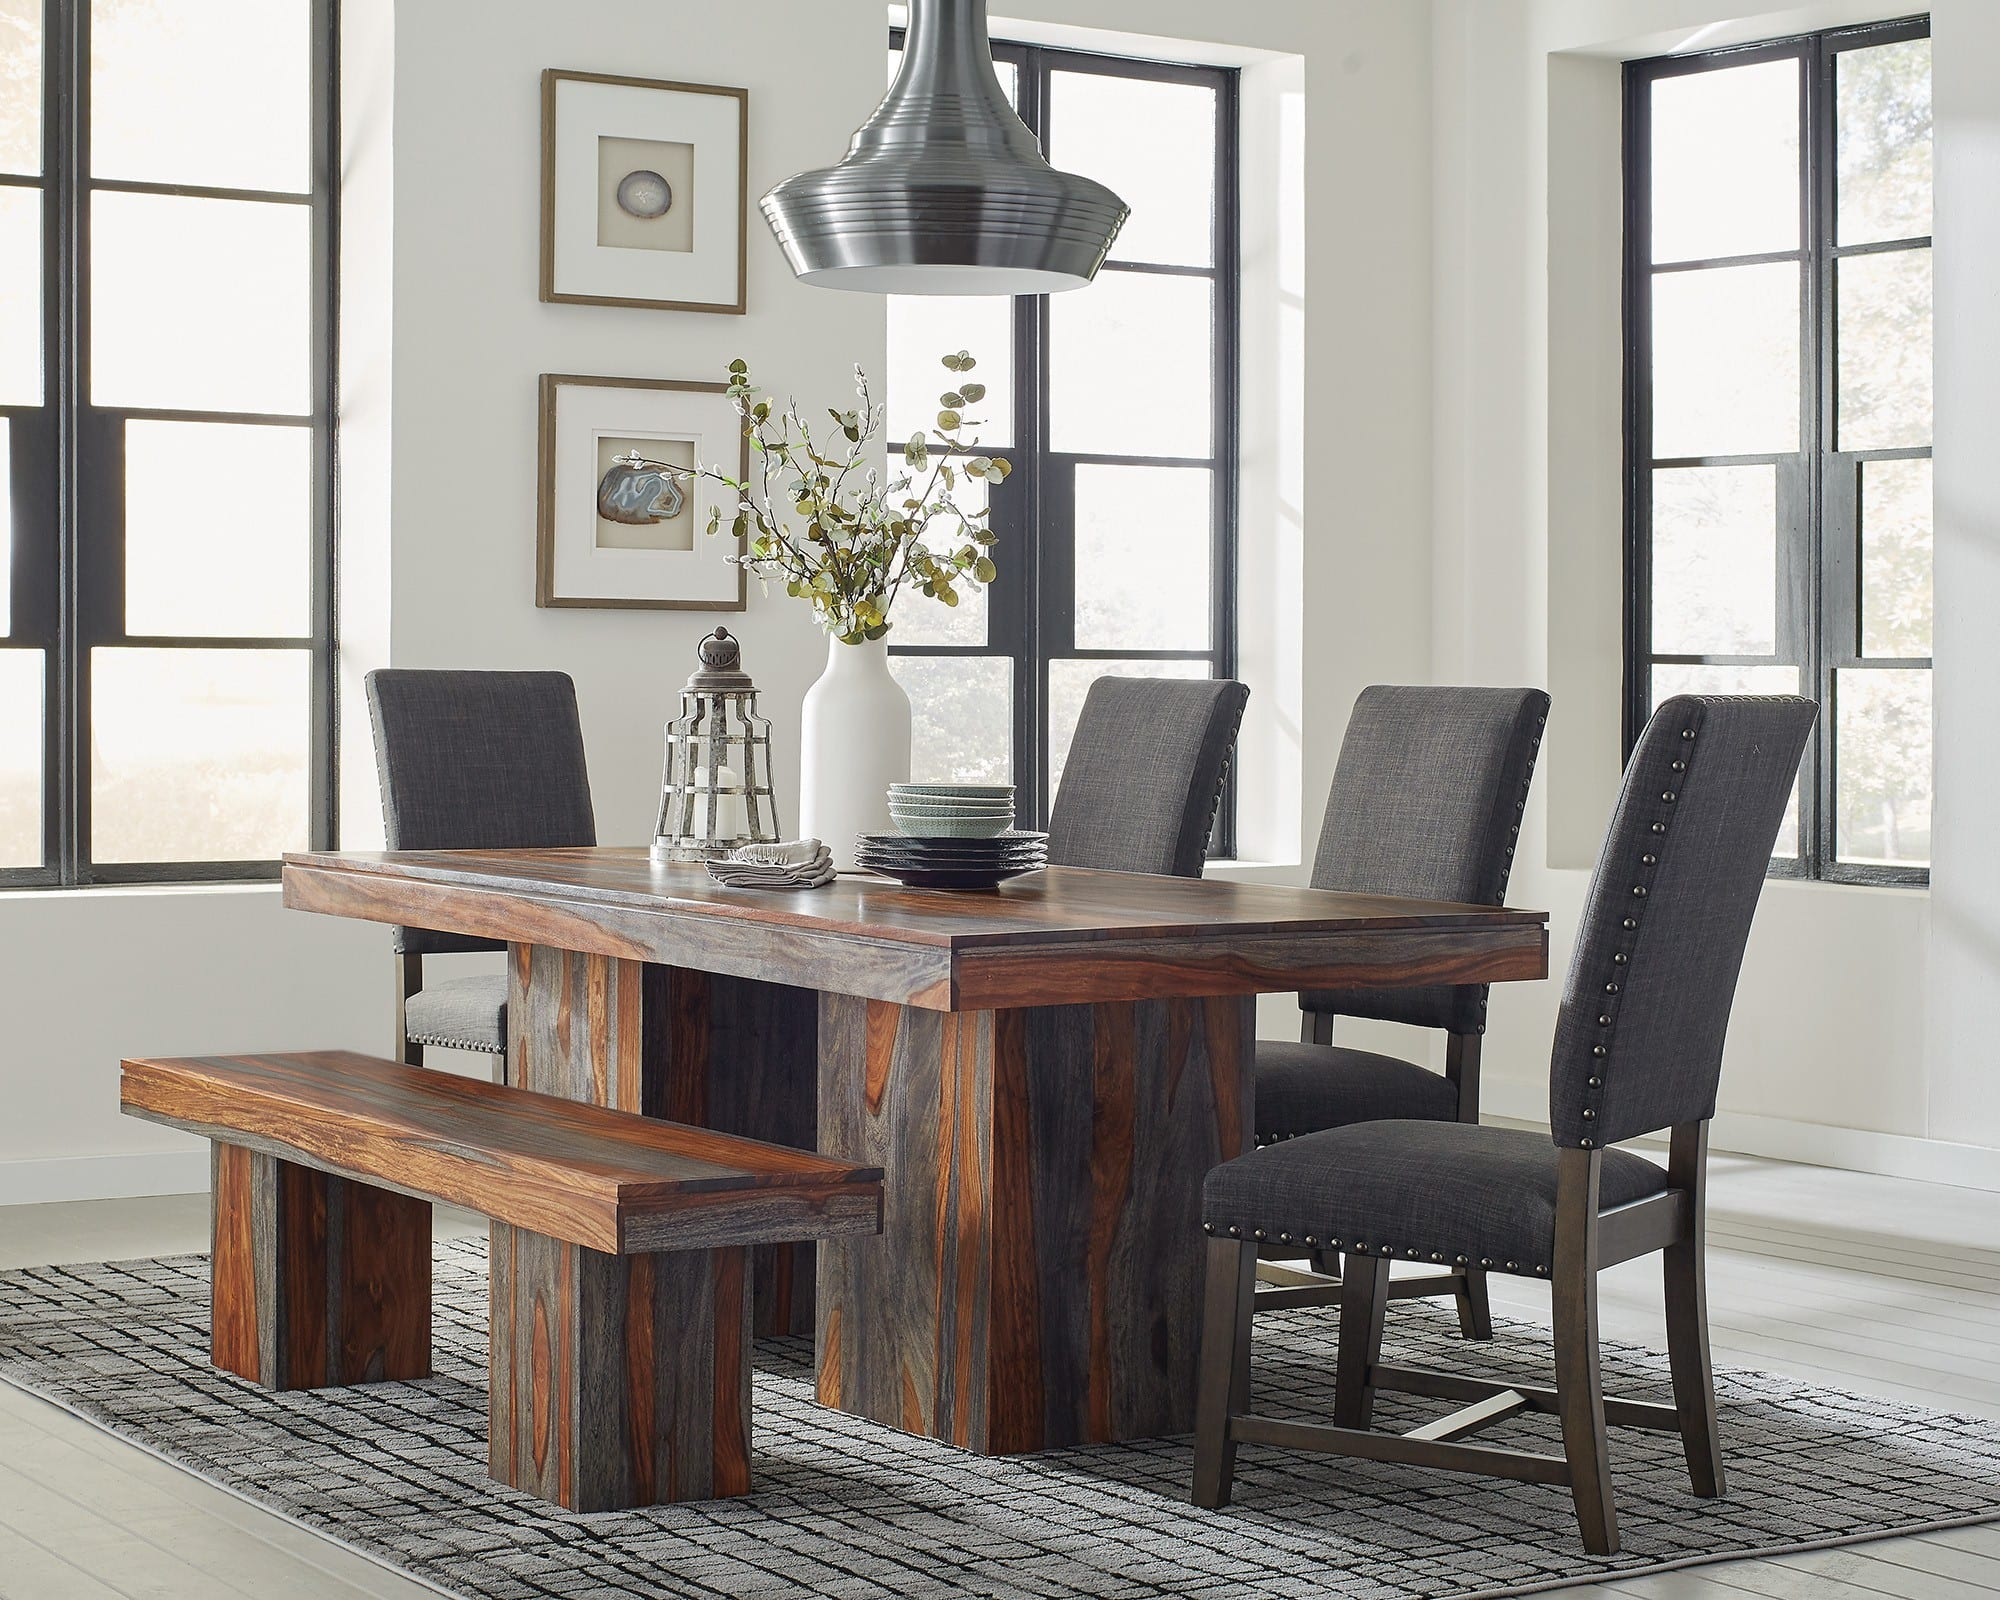 Cool Scott Living Binghamton Gray Brown 6 Piece Dining Room Set Reviews Goedekers Com Home Interior And Landscaping Ologienasavecom